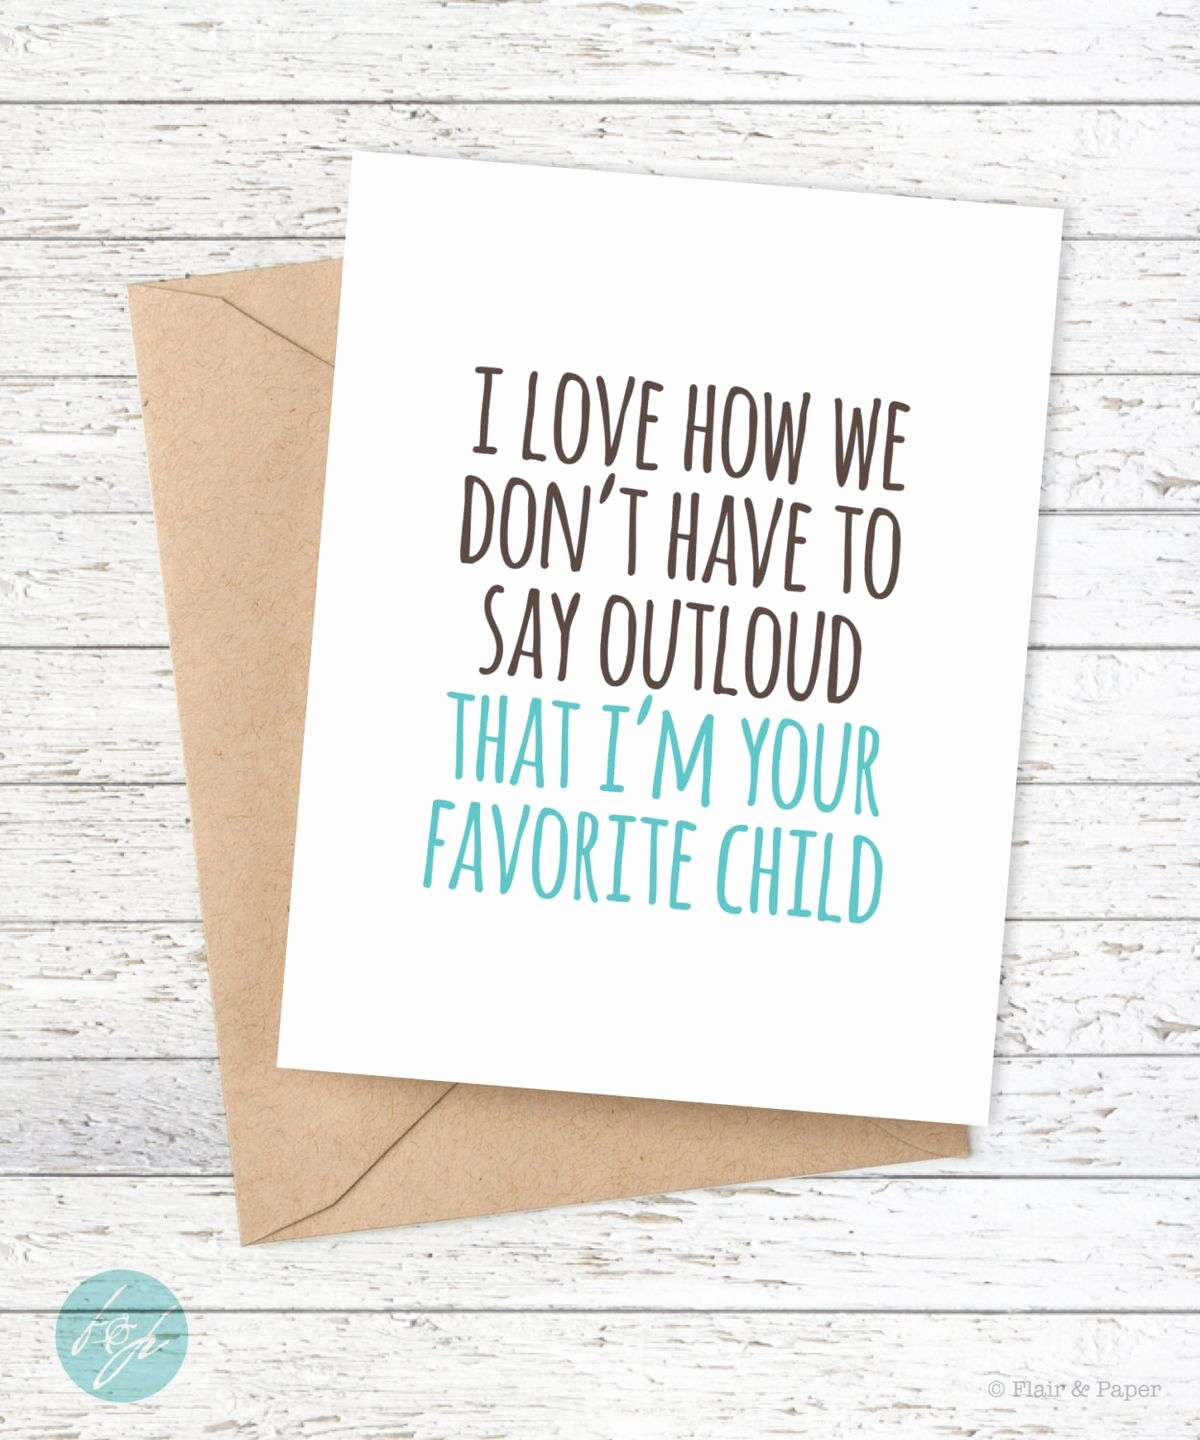 free printable birthday cards for mom and grandma ; free-online-birthday-cards-for-mom-new-template-free-printable-birthday-cards-for-mom-and-grandma-as-of-free-online-birthday-cards-for-mom